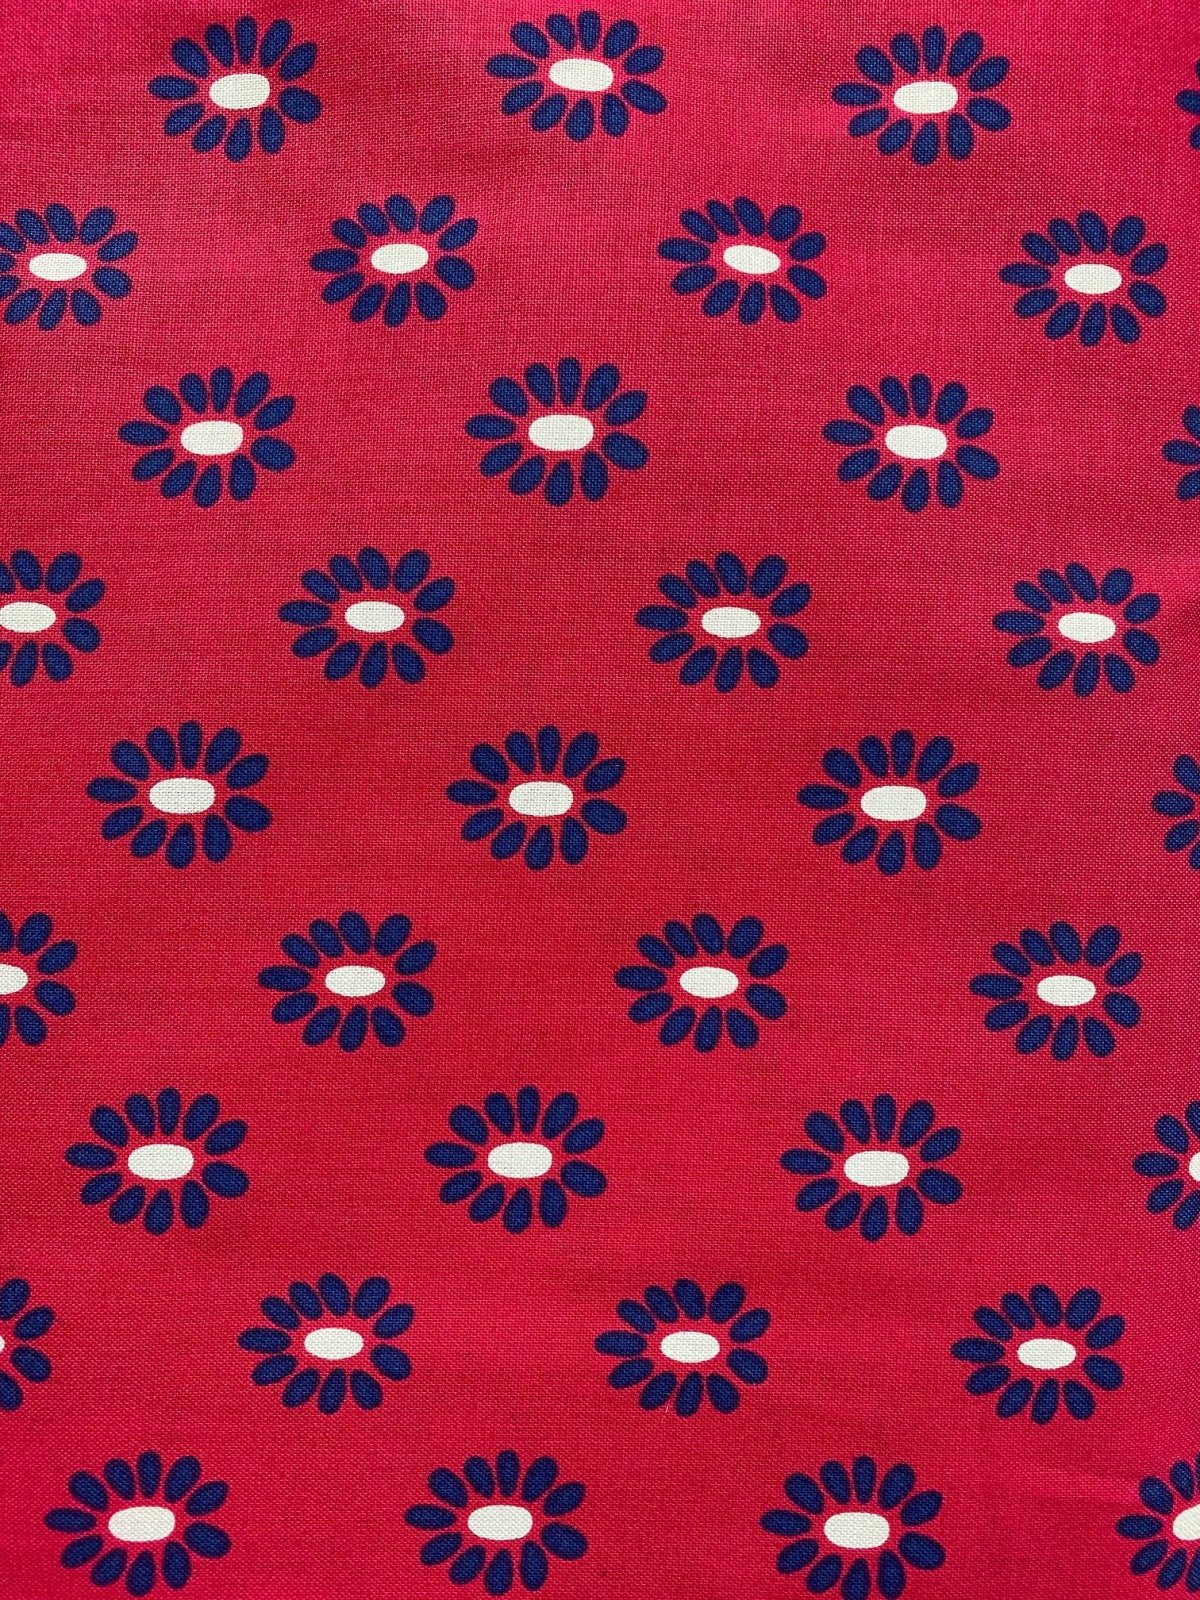 Andover 7636 Red/Blue Daisy